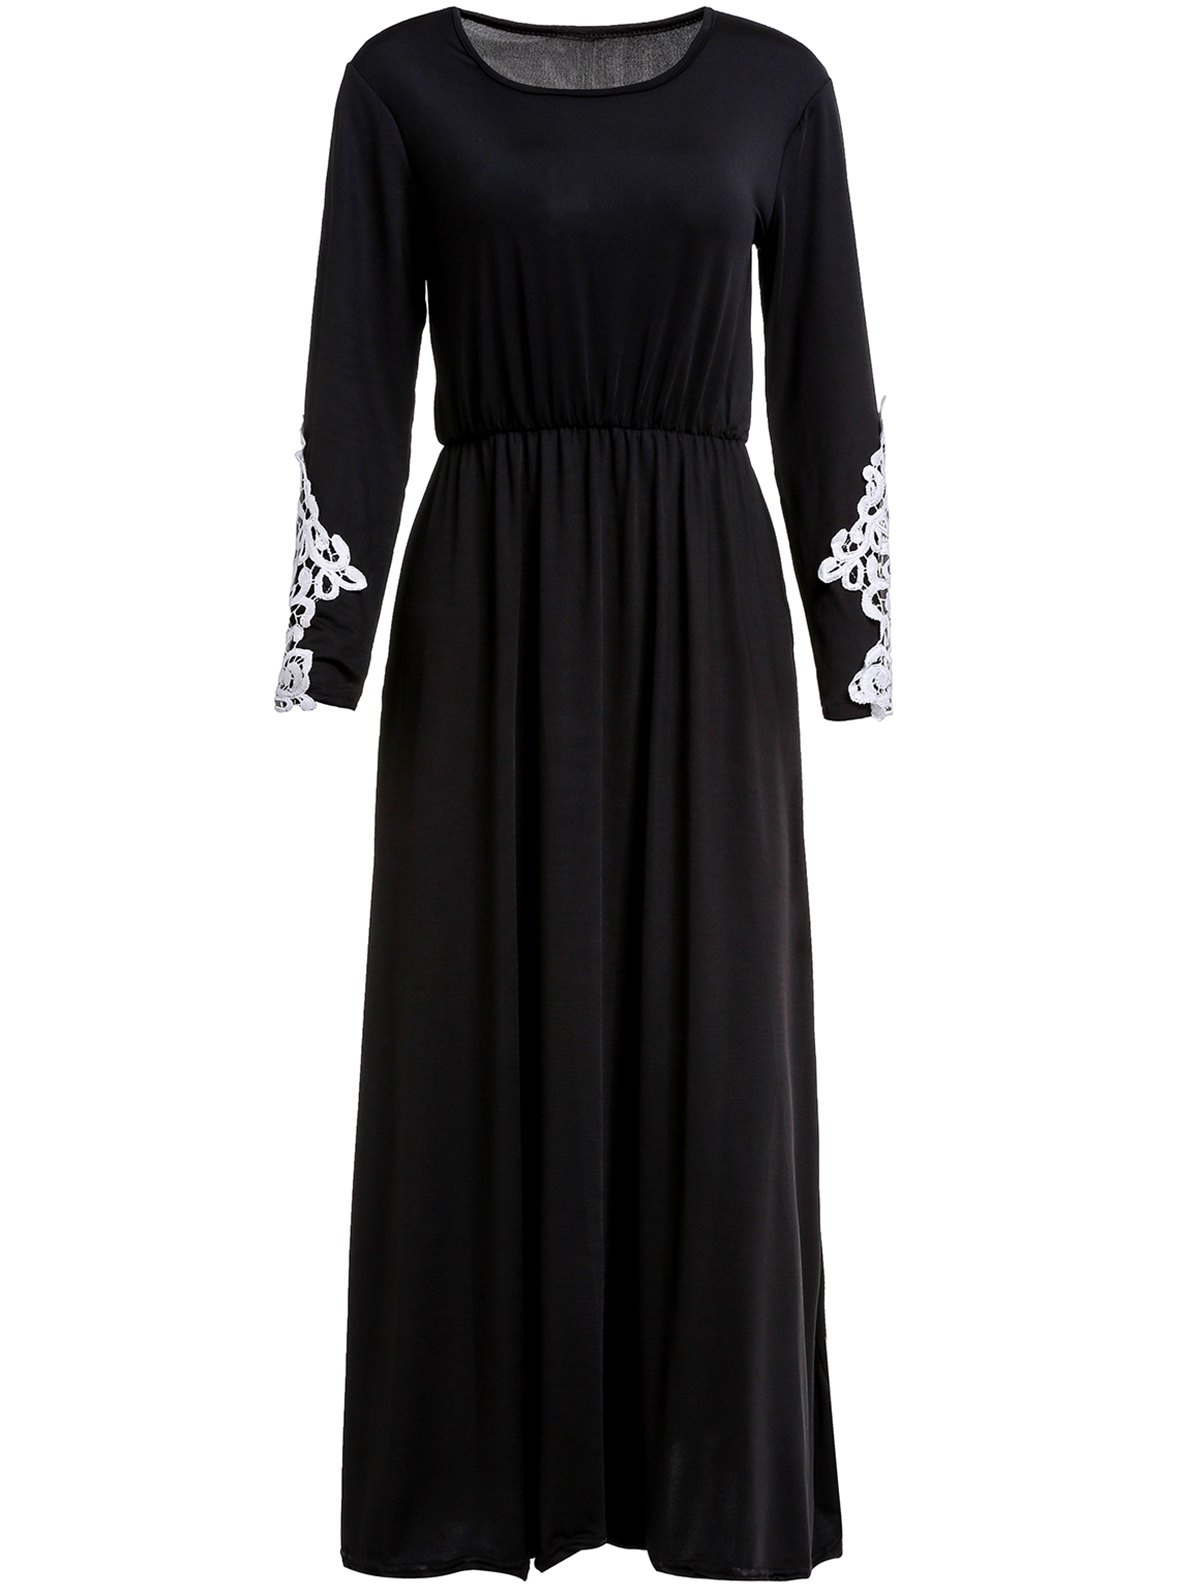 Stylish Long Sleeve Scoop Collar Appliques Design Women's Maxi Dress - BLACK M